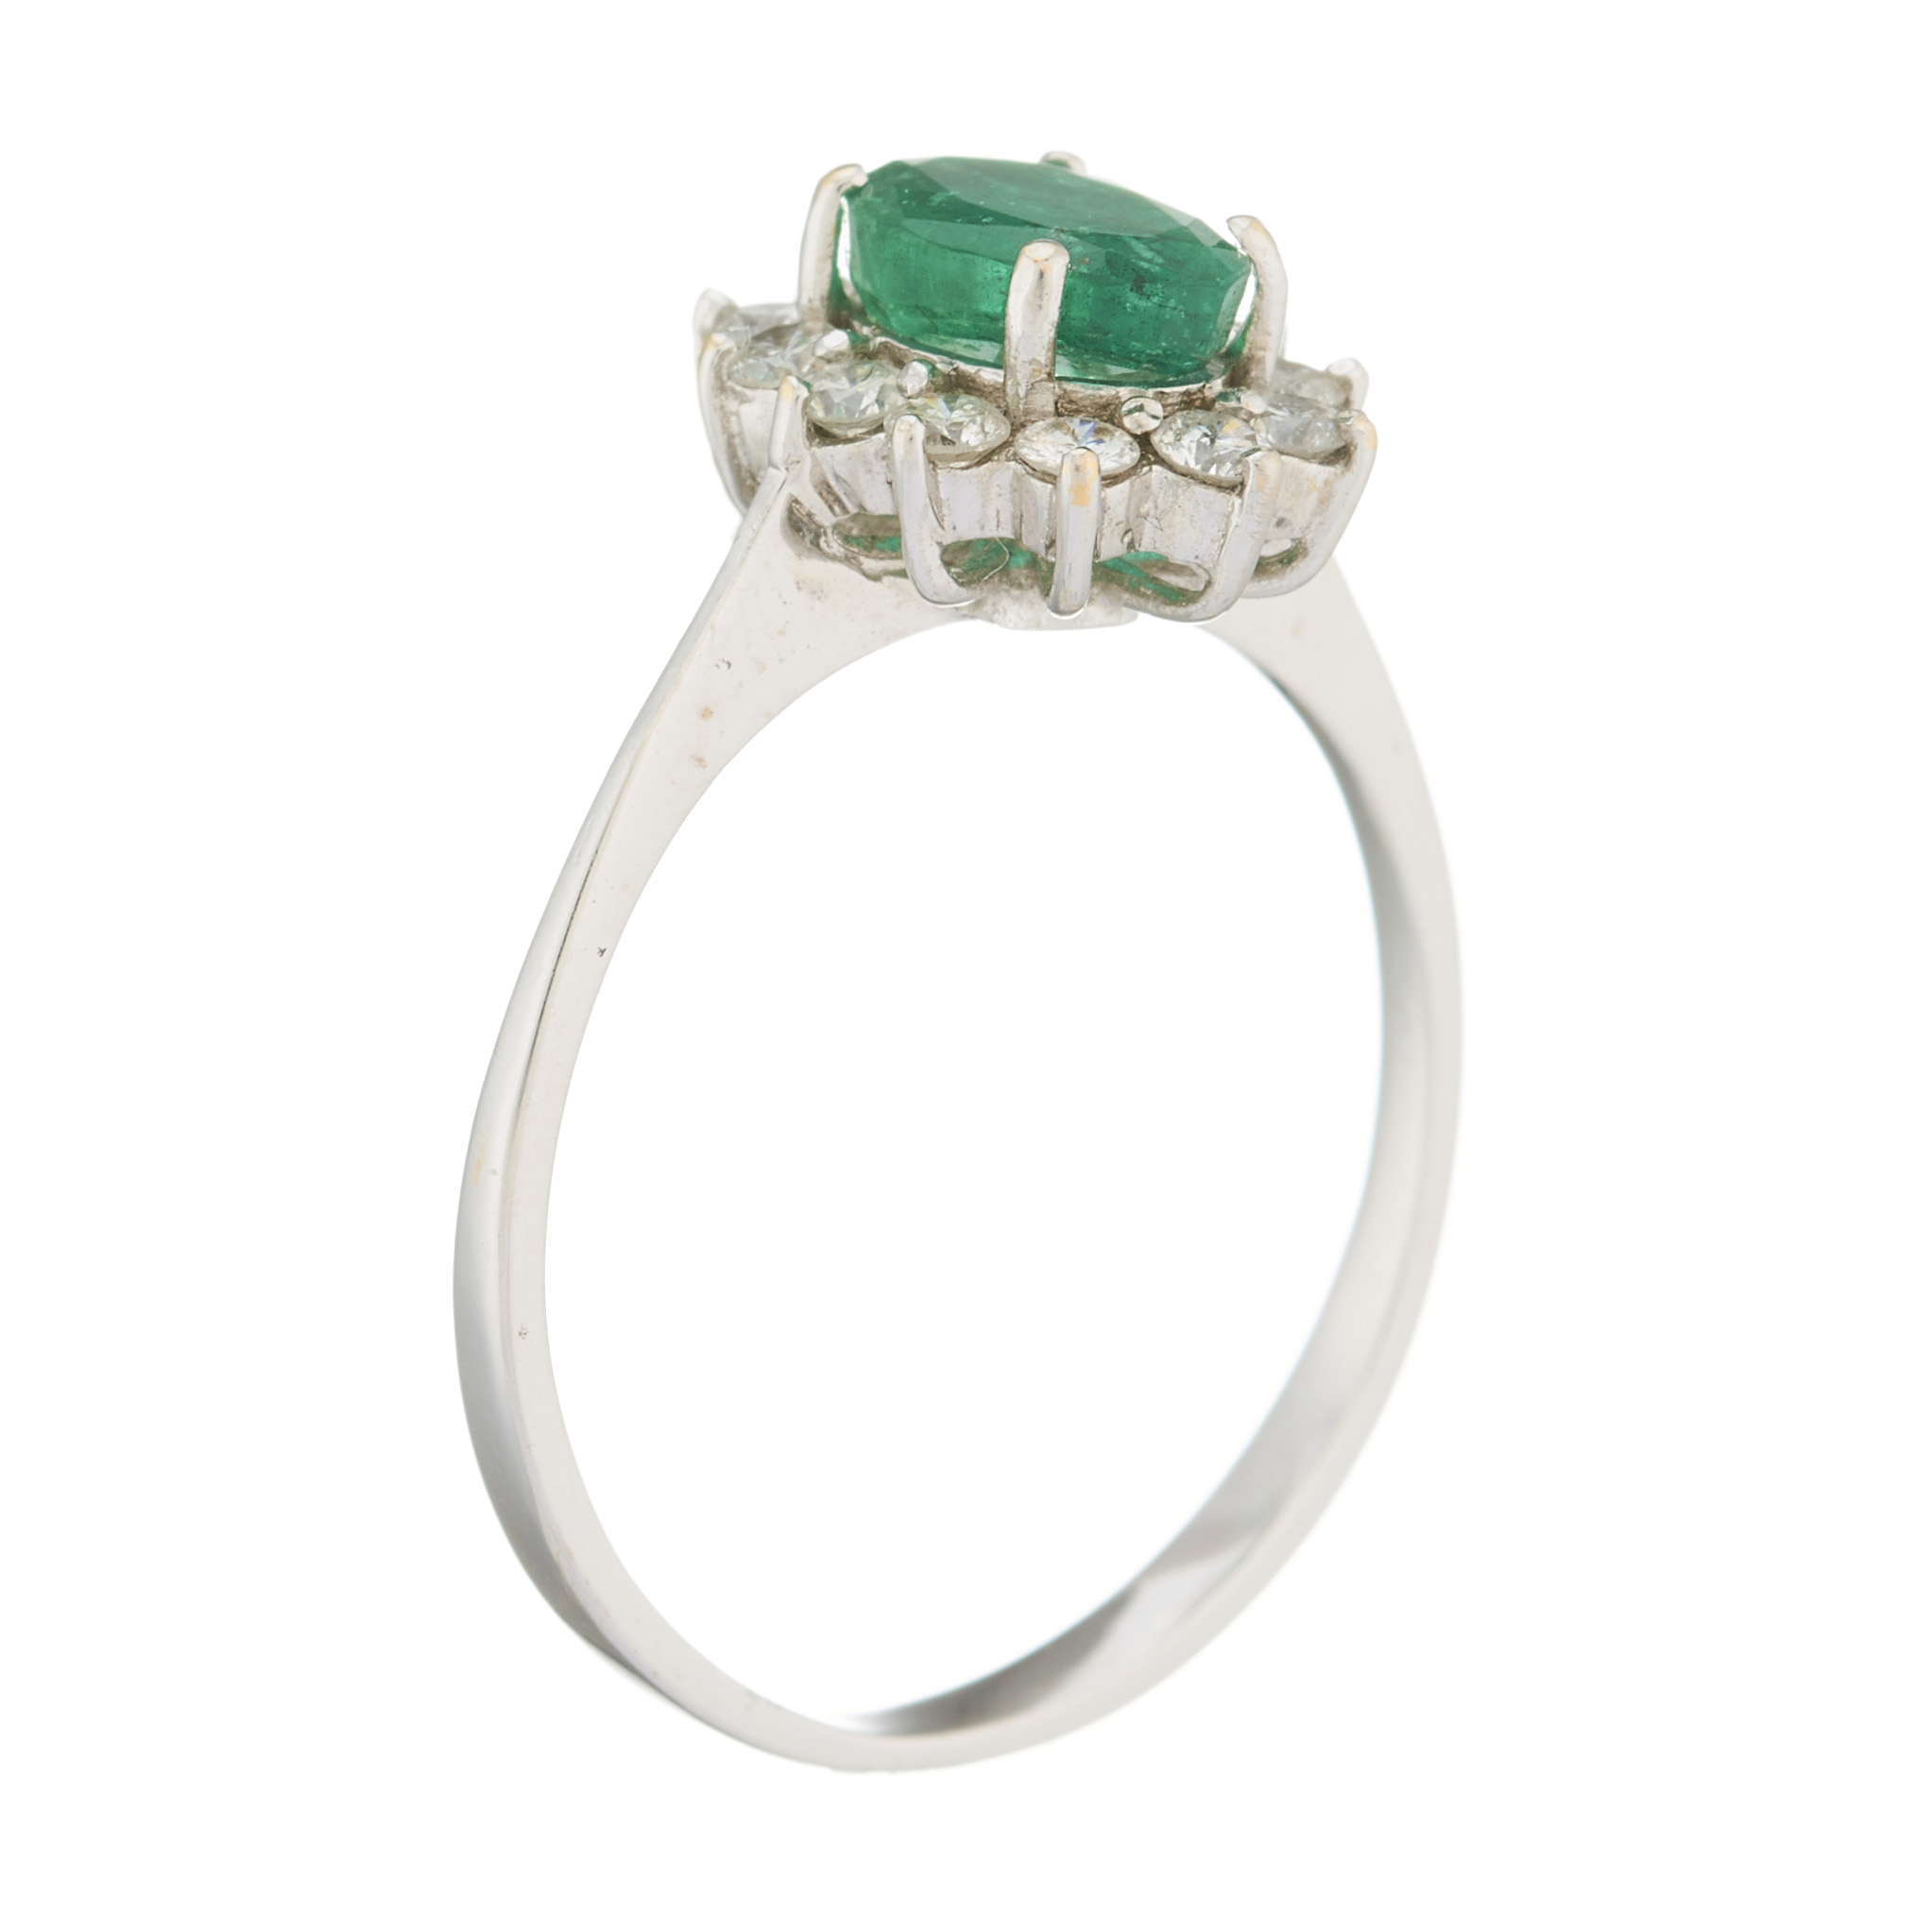 An 18ct gold emerald and diamond cluster ring - Image 2 of 2